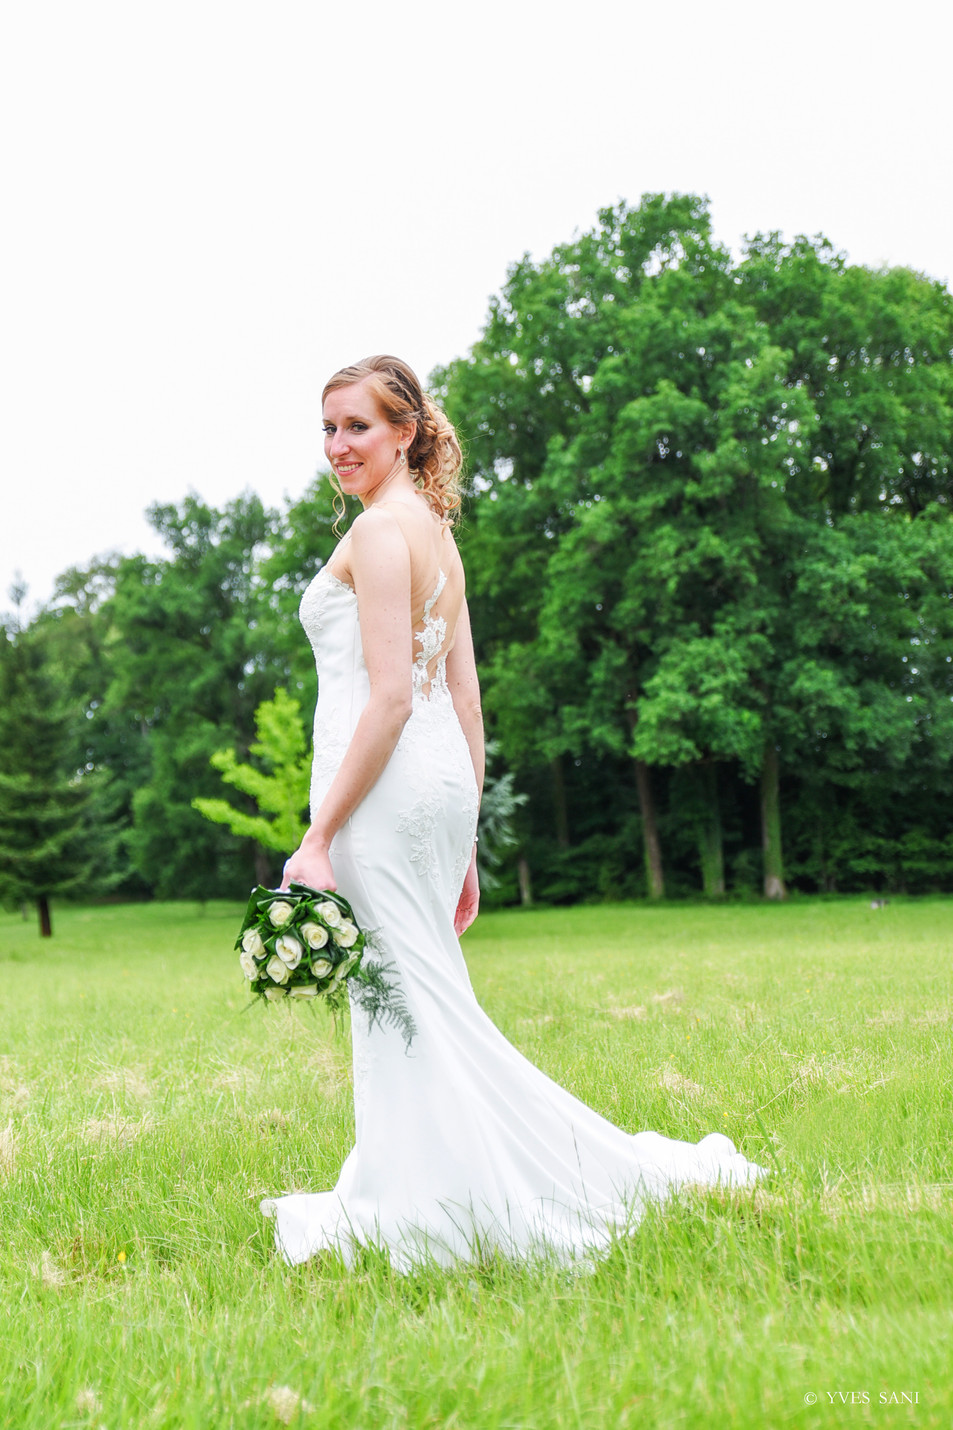 The bride & her bouquet